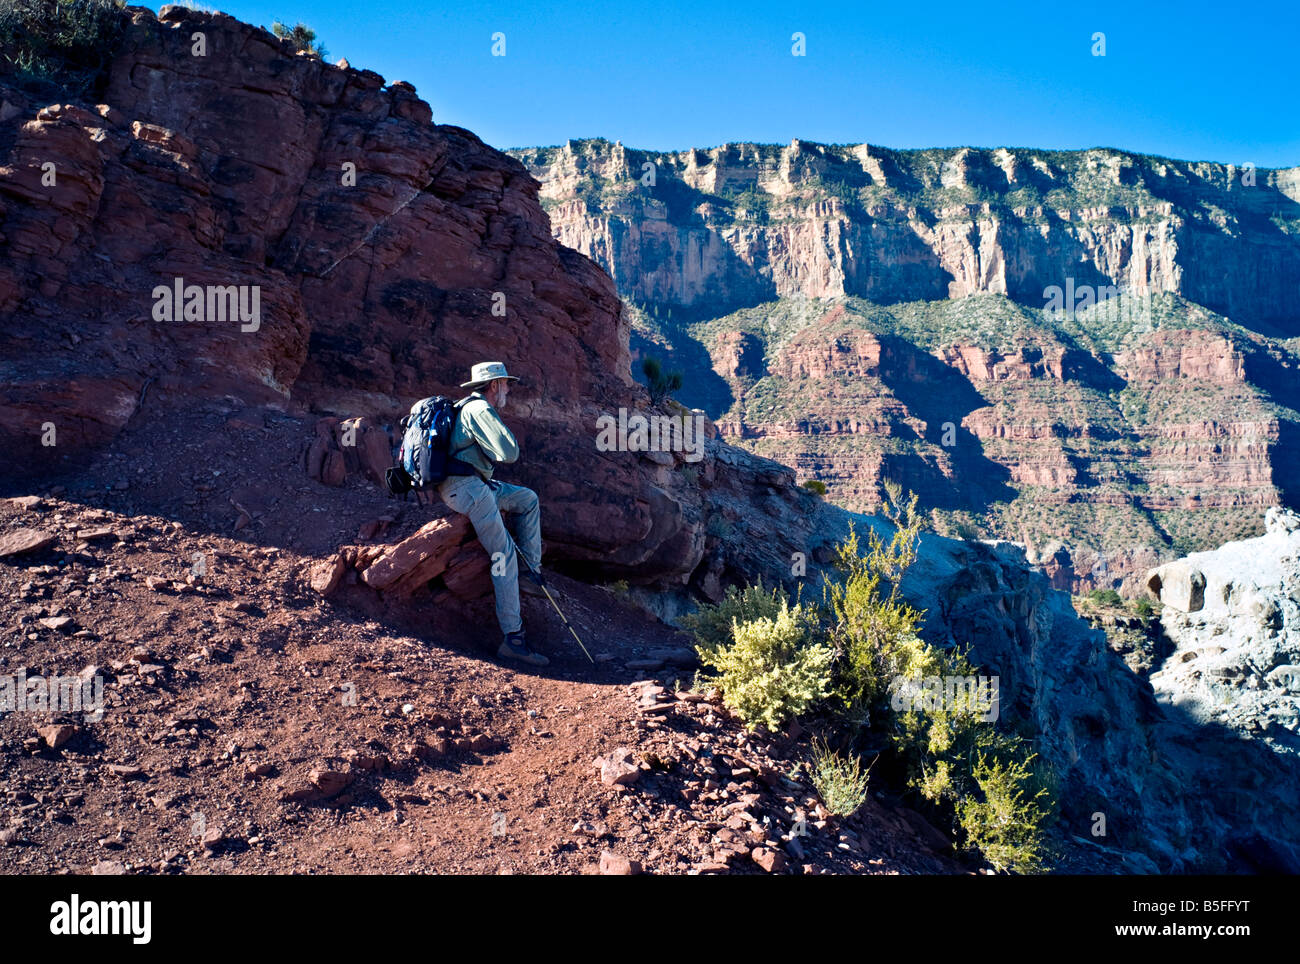 ARIZONA GRAND CANYON Hiker stops to admire the view as he hikes down the South Kaibab Trail into the Grand Canyon - Stock Image